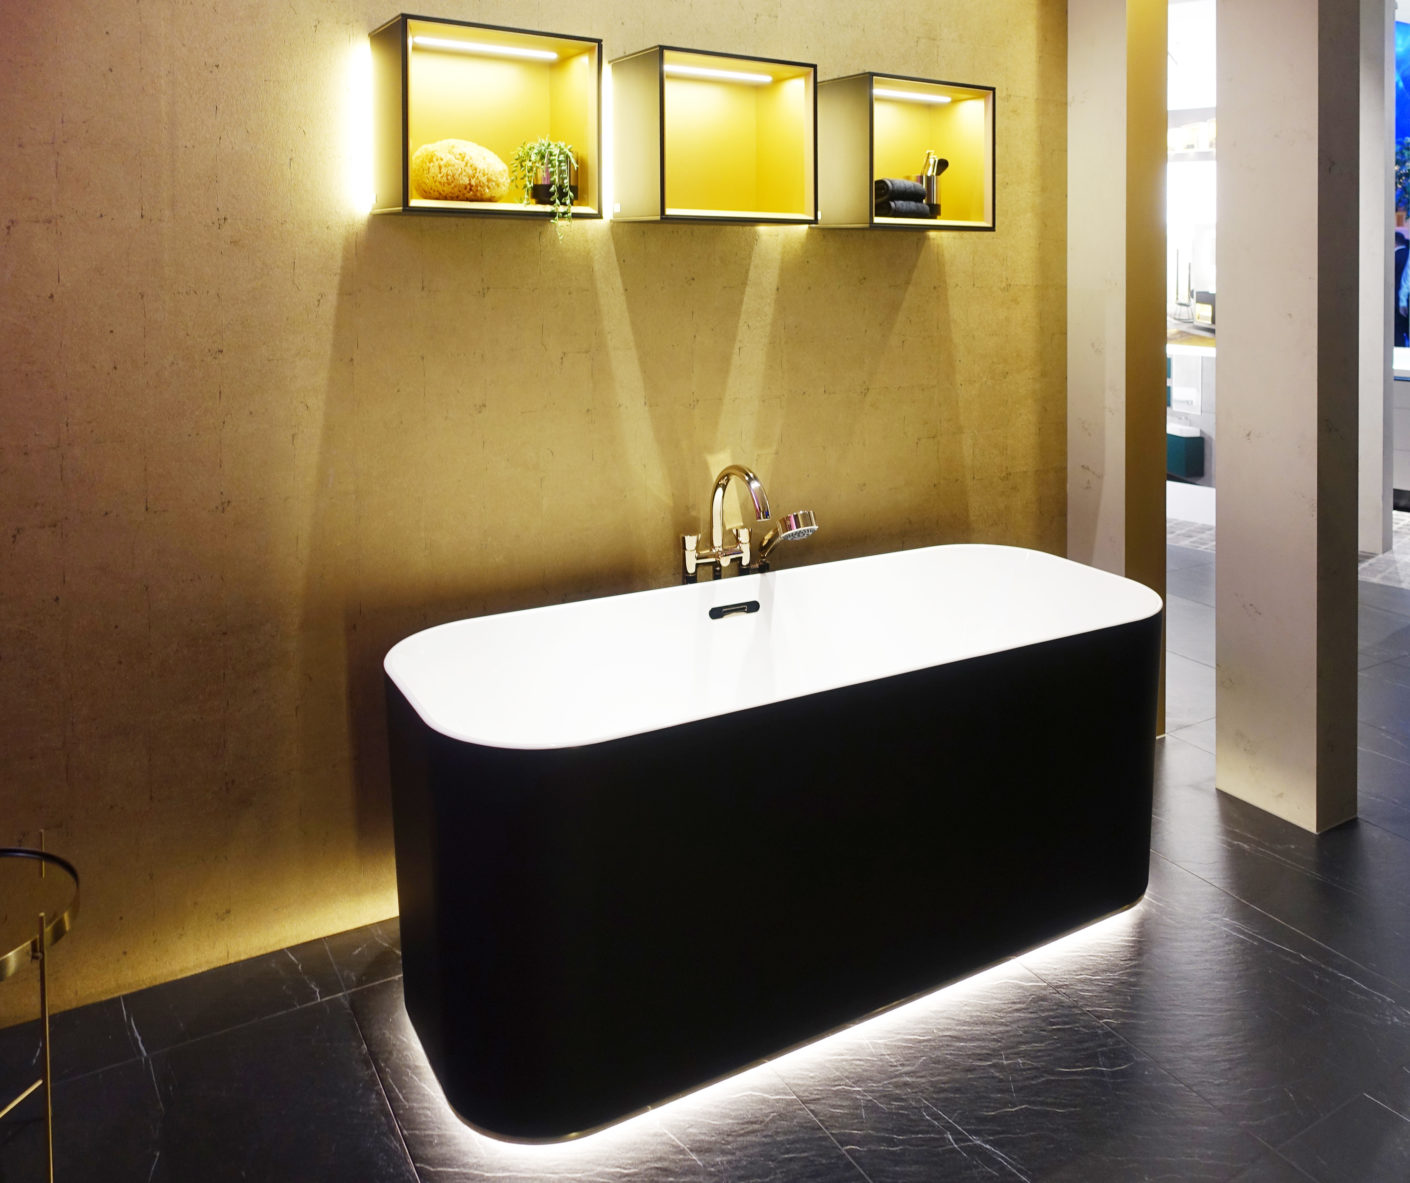 Lifted: Not only Villeroy & Boch seems to float the bathtub by under-floor lighting.